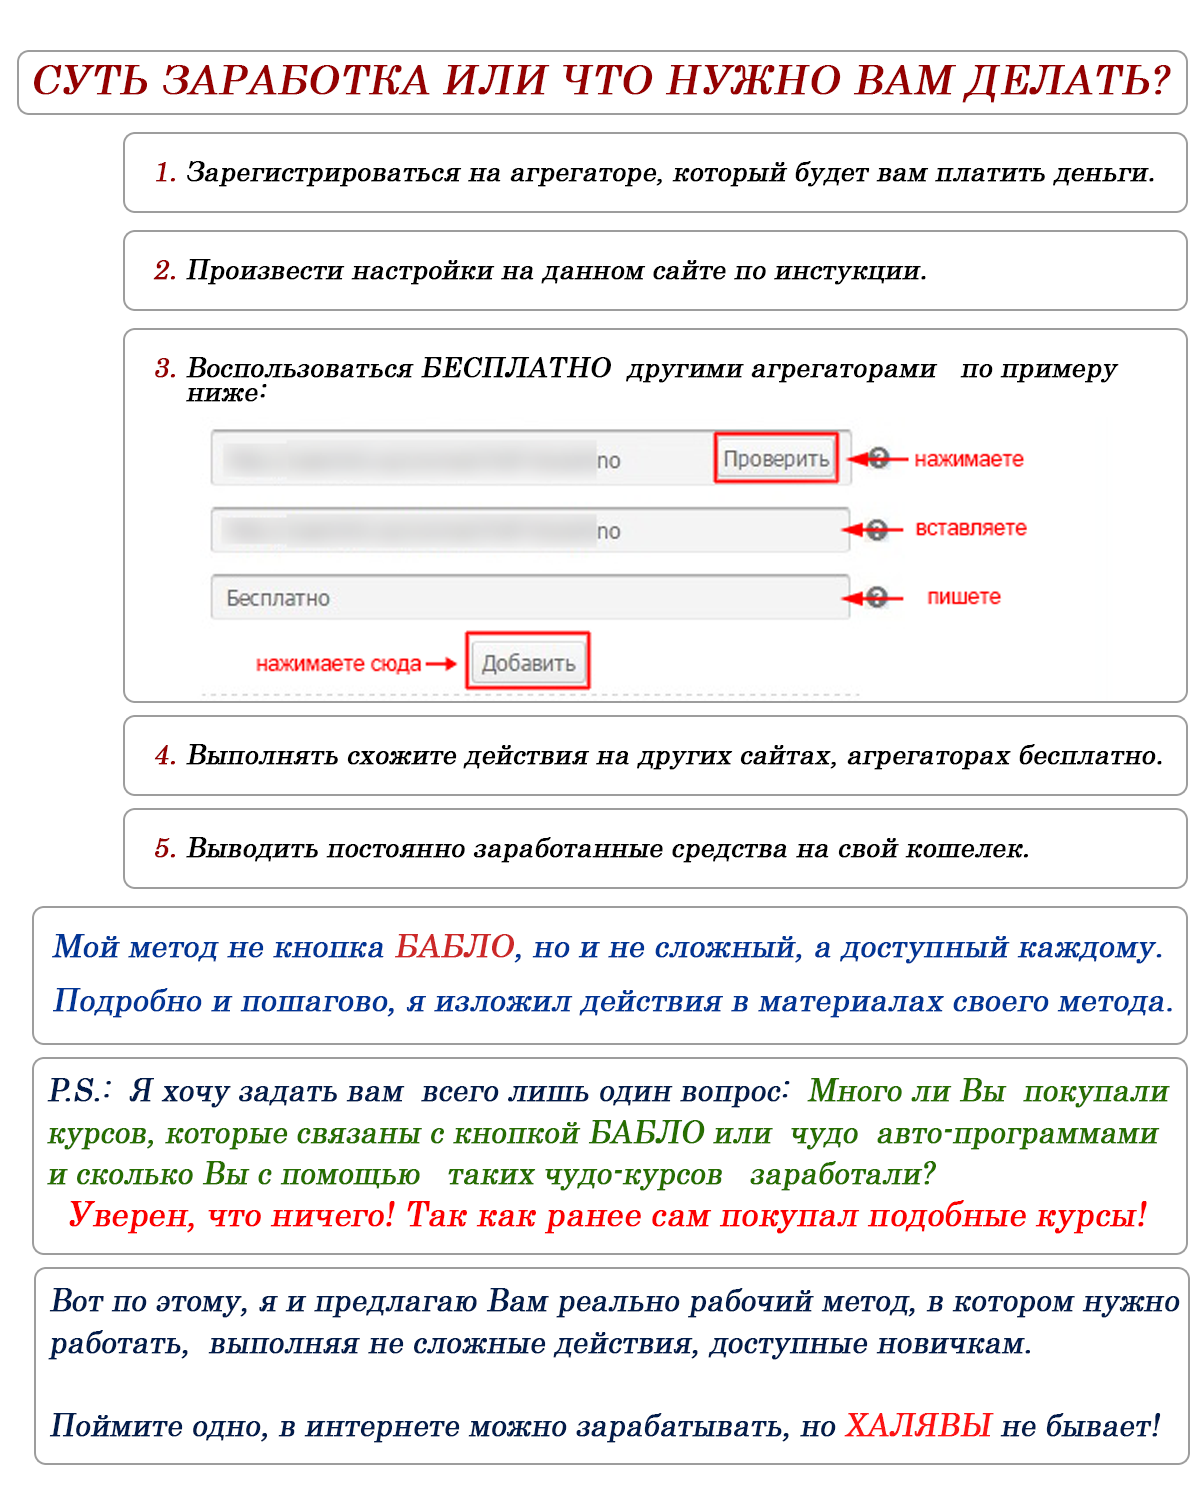 http://u1.platformalp.ru/b5adf76a1b00b3359e763237061f76e8/c3635395800d187b0c89ce30c70a04bc.png